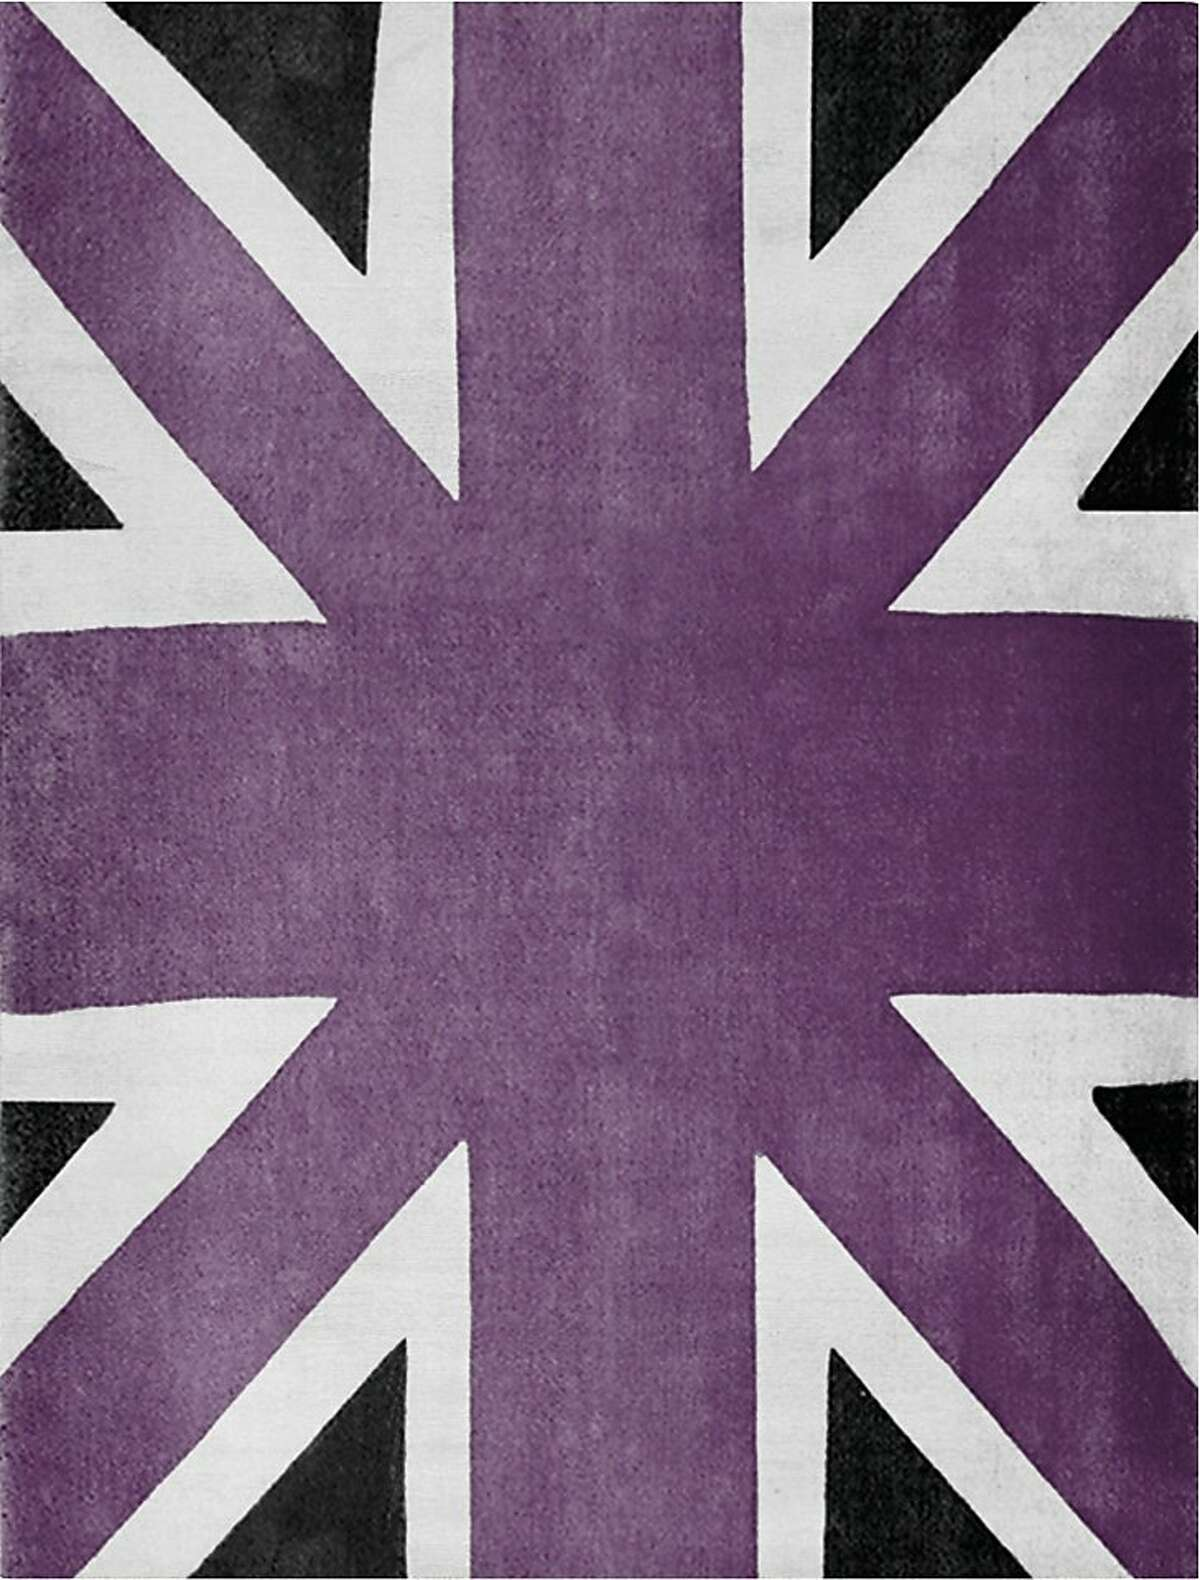 Union Jack rug from 2Modern Ran on: 10-02-2011 Photo caption Dummy text goes here. Dummy text goes here. Dummy text goes here. Dummy text goes here. Dummy text goes here. Dummy text goes here. Dummy text goes here. Dummy text goes here.###Photo: moreorless25_more0###Live Caption:Union Jack rug from 2Modern###Caption History:Union Jack rug from 2Modern###Notes:###Special Instructions: